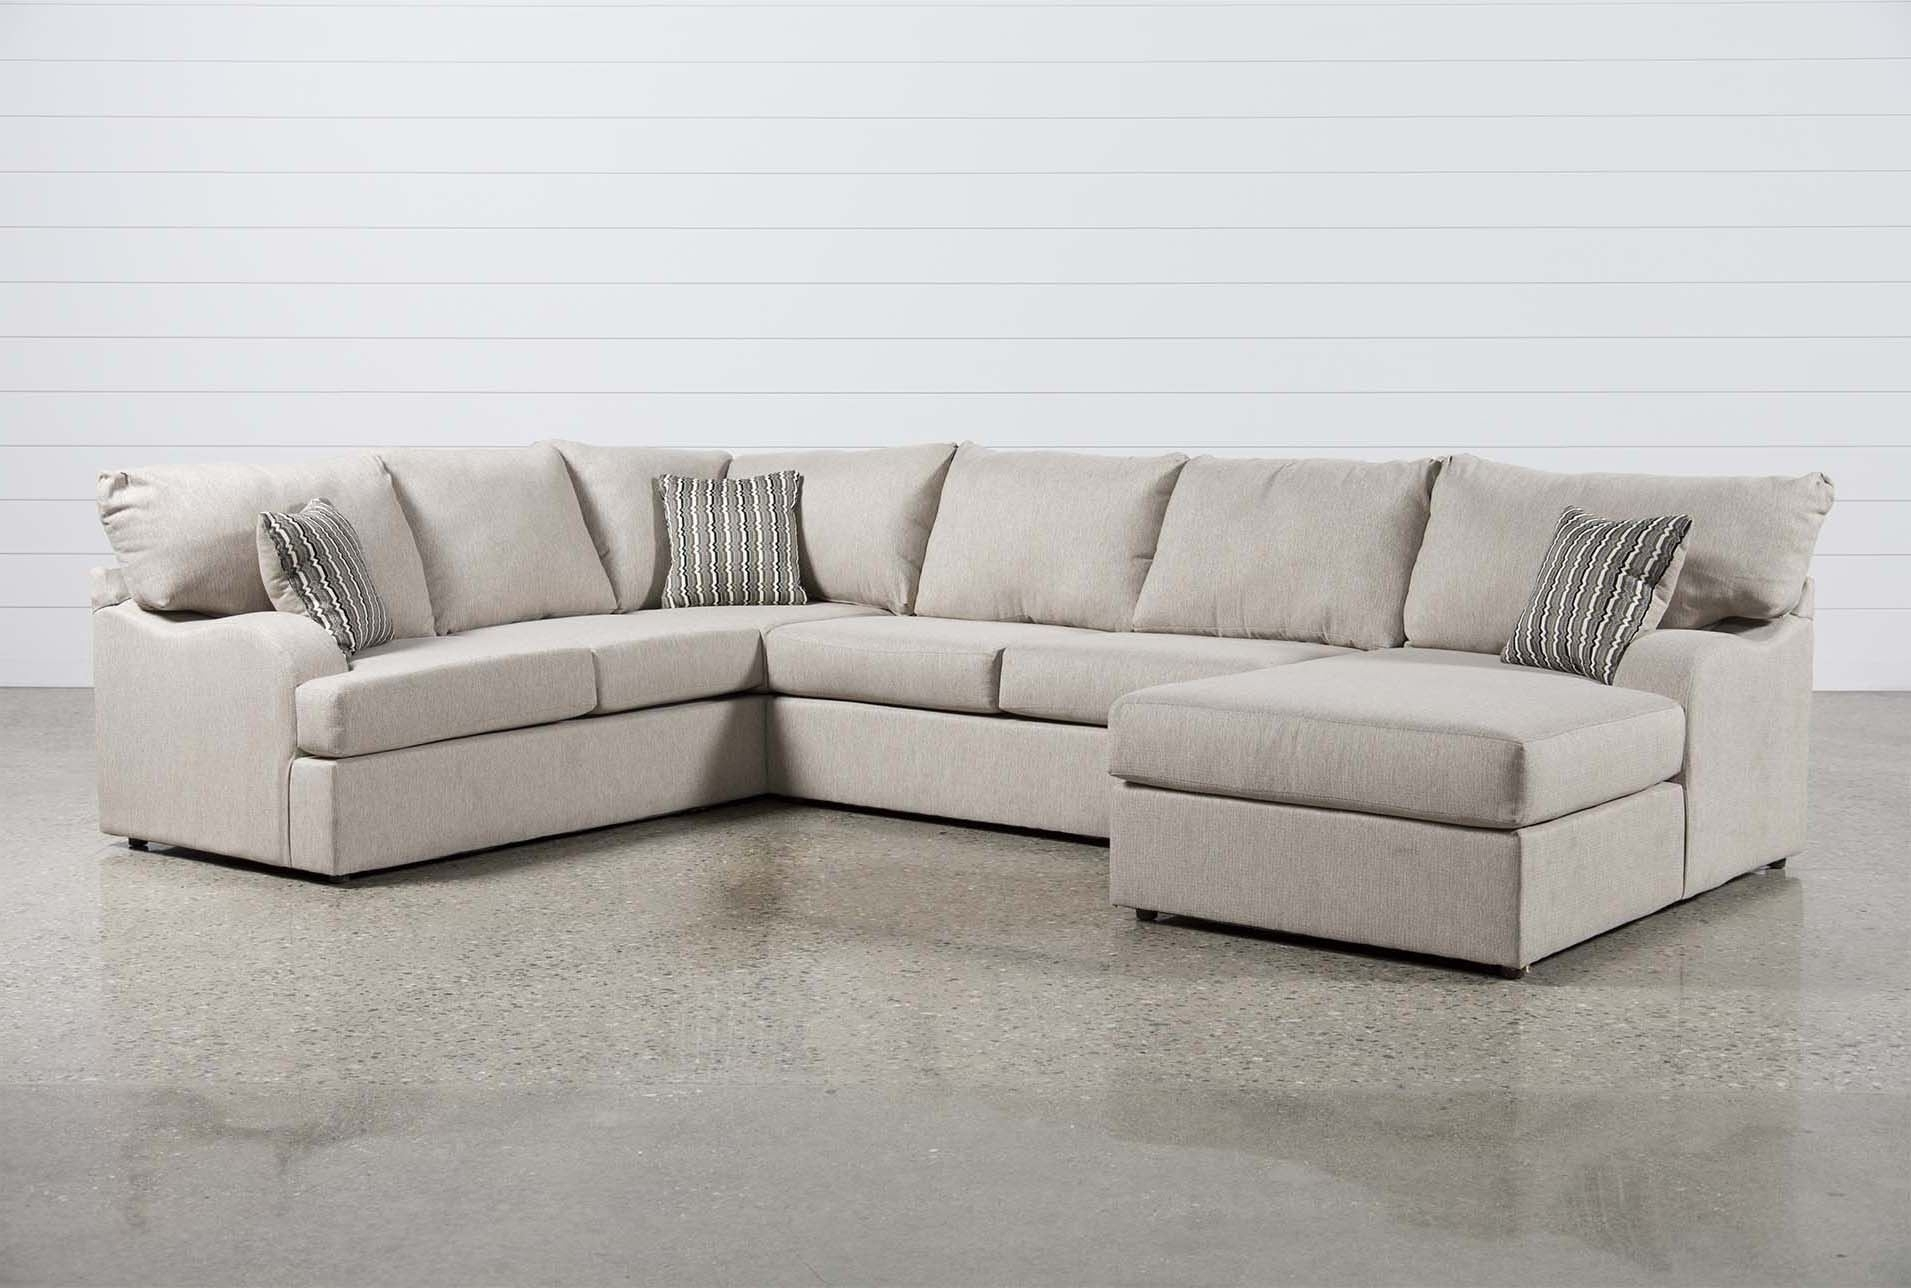 Ideas Of Raf Chaise For Aspen 2 Piece Sectional W Raf Chaise Living Pertaining To Aspen 2 Piece Sectionals With Raf Chaise (Image 15 of 25)